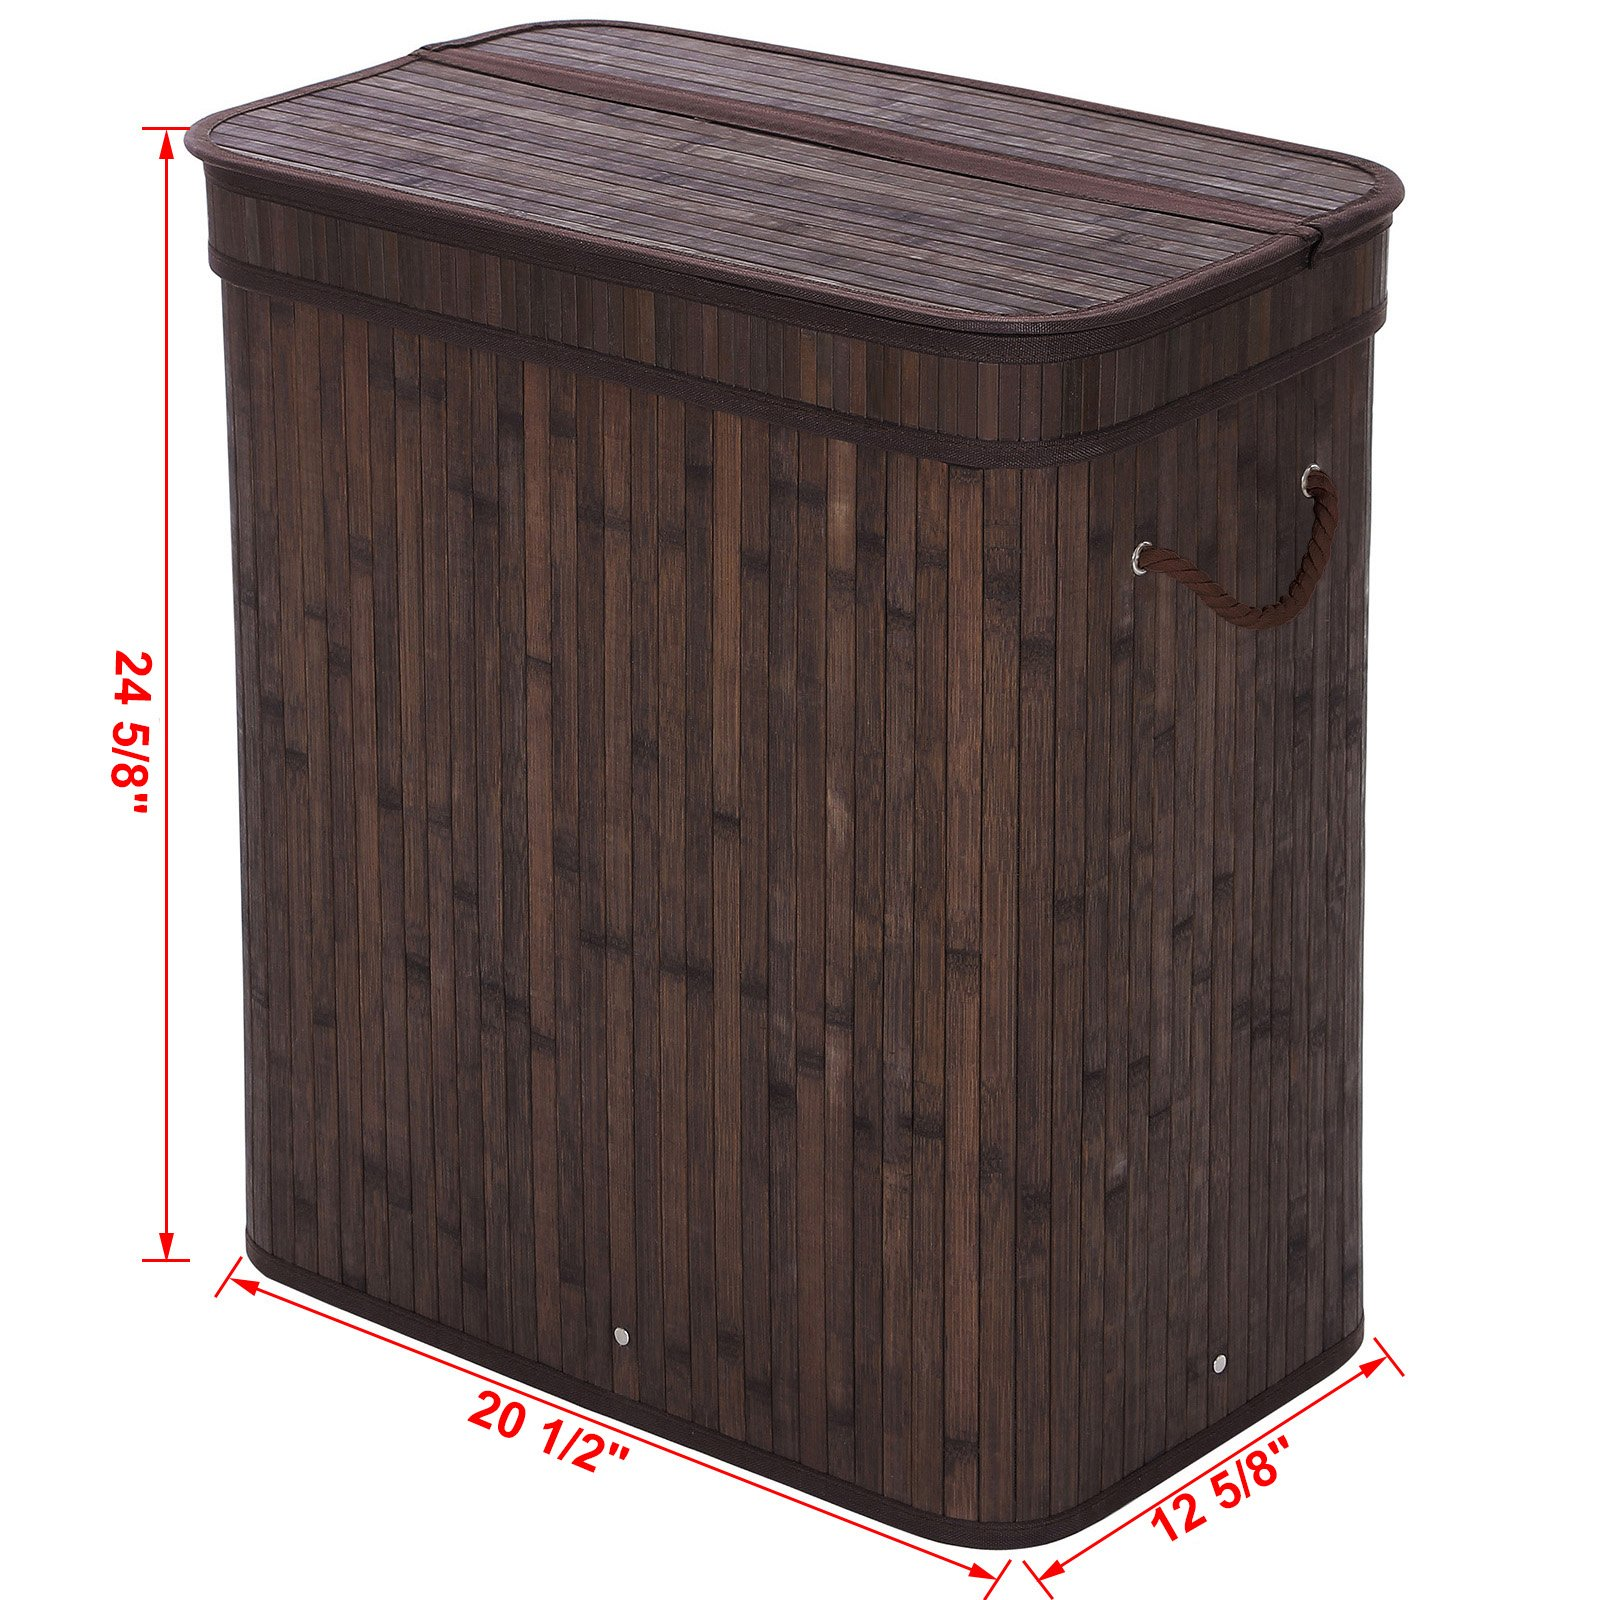 SONGMICS Folding Laundry Basket with Lid Handles and Removable Liner Bamboo Hampers Dirty Clothes Storage Rectangular Dark Brown ULCB63B by SONGMICS (Image #6)